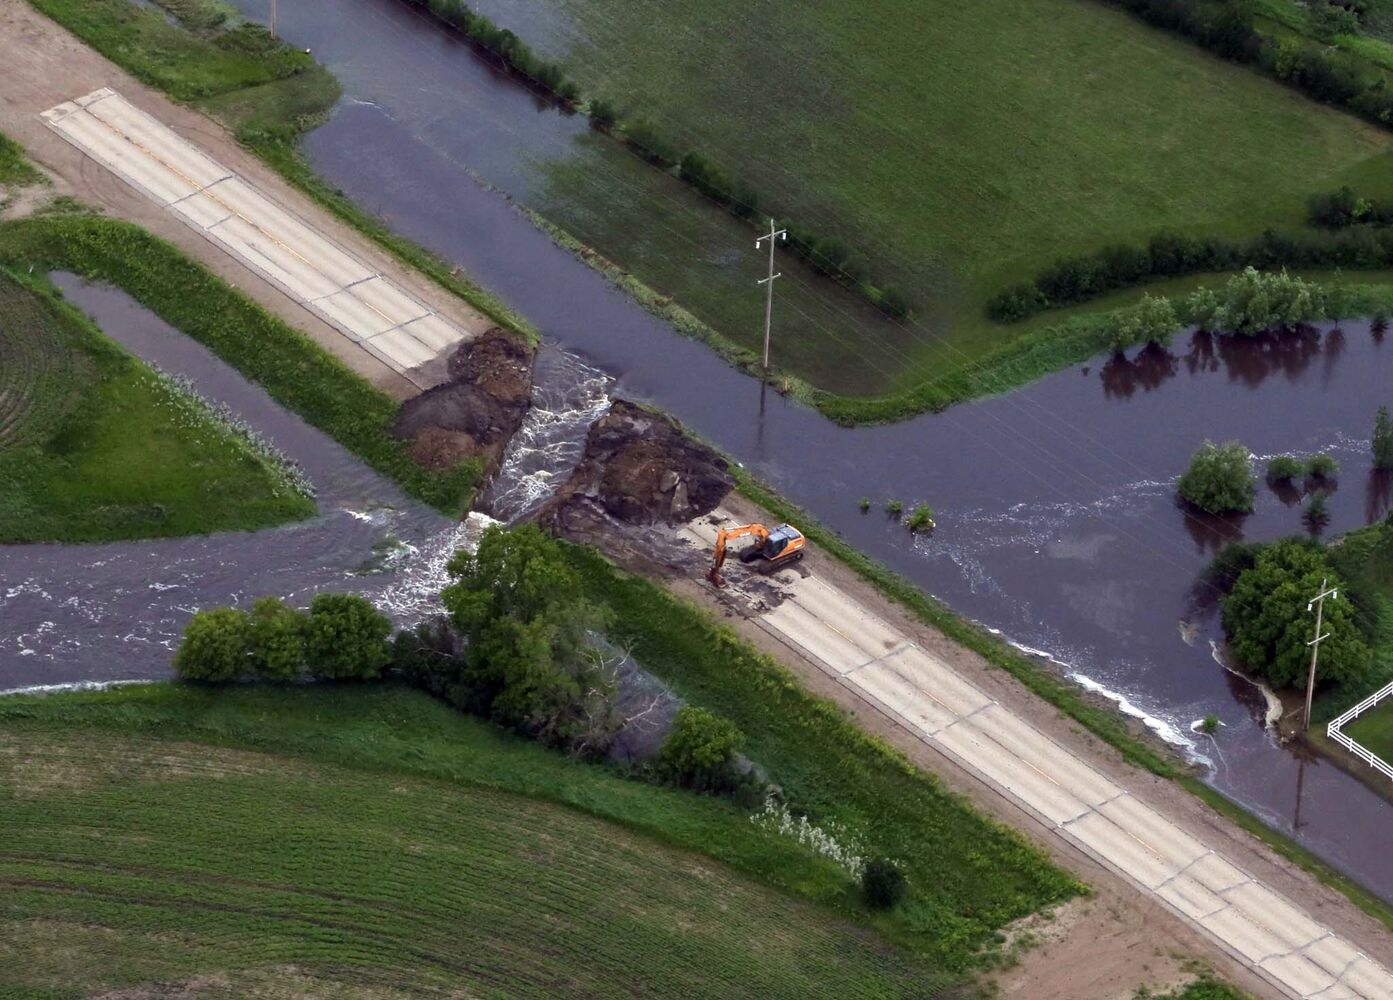 Damage to Veterans Way is seen after heavy weekend rainfall left a swath of flooding across southwestern Manitoba. Over 100 mm of rain fell in the area, with 127 mm recorded at Brandon Airport.